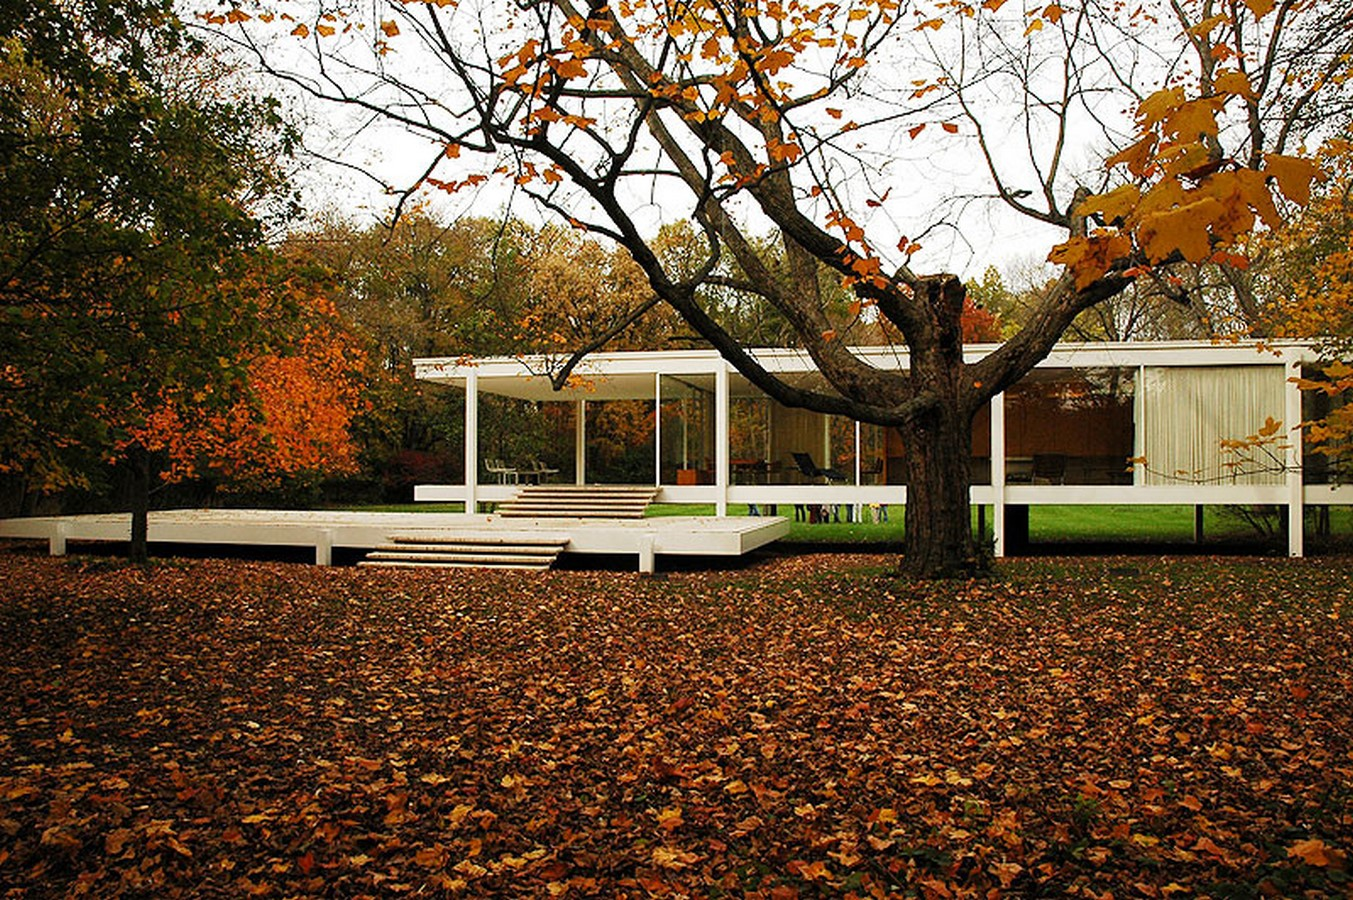 Farnsworth House by Mies van der Rohe: A bond between the House and Nature - Sheet1